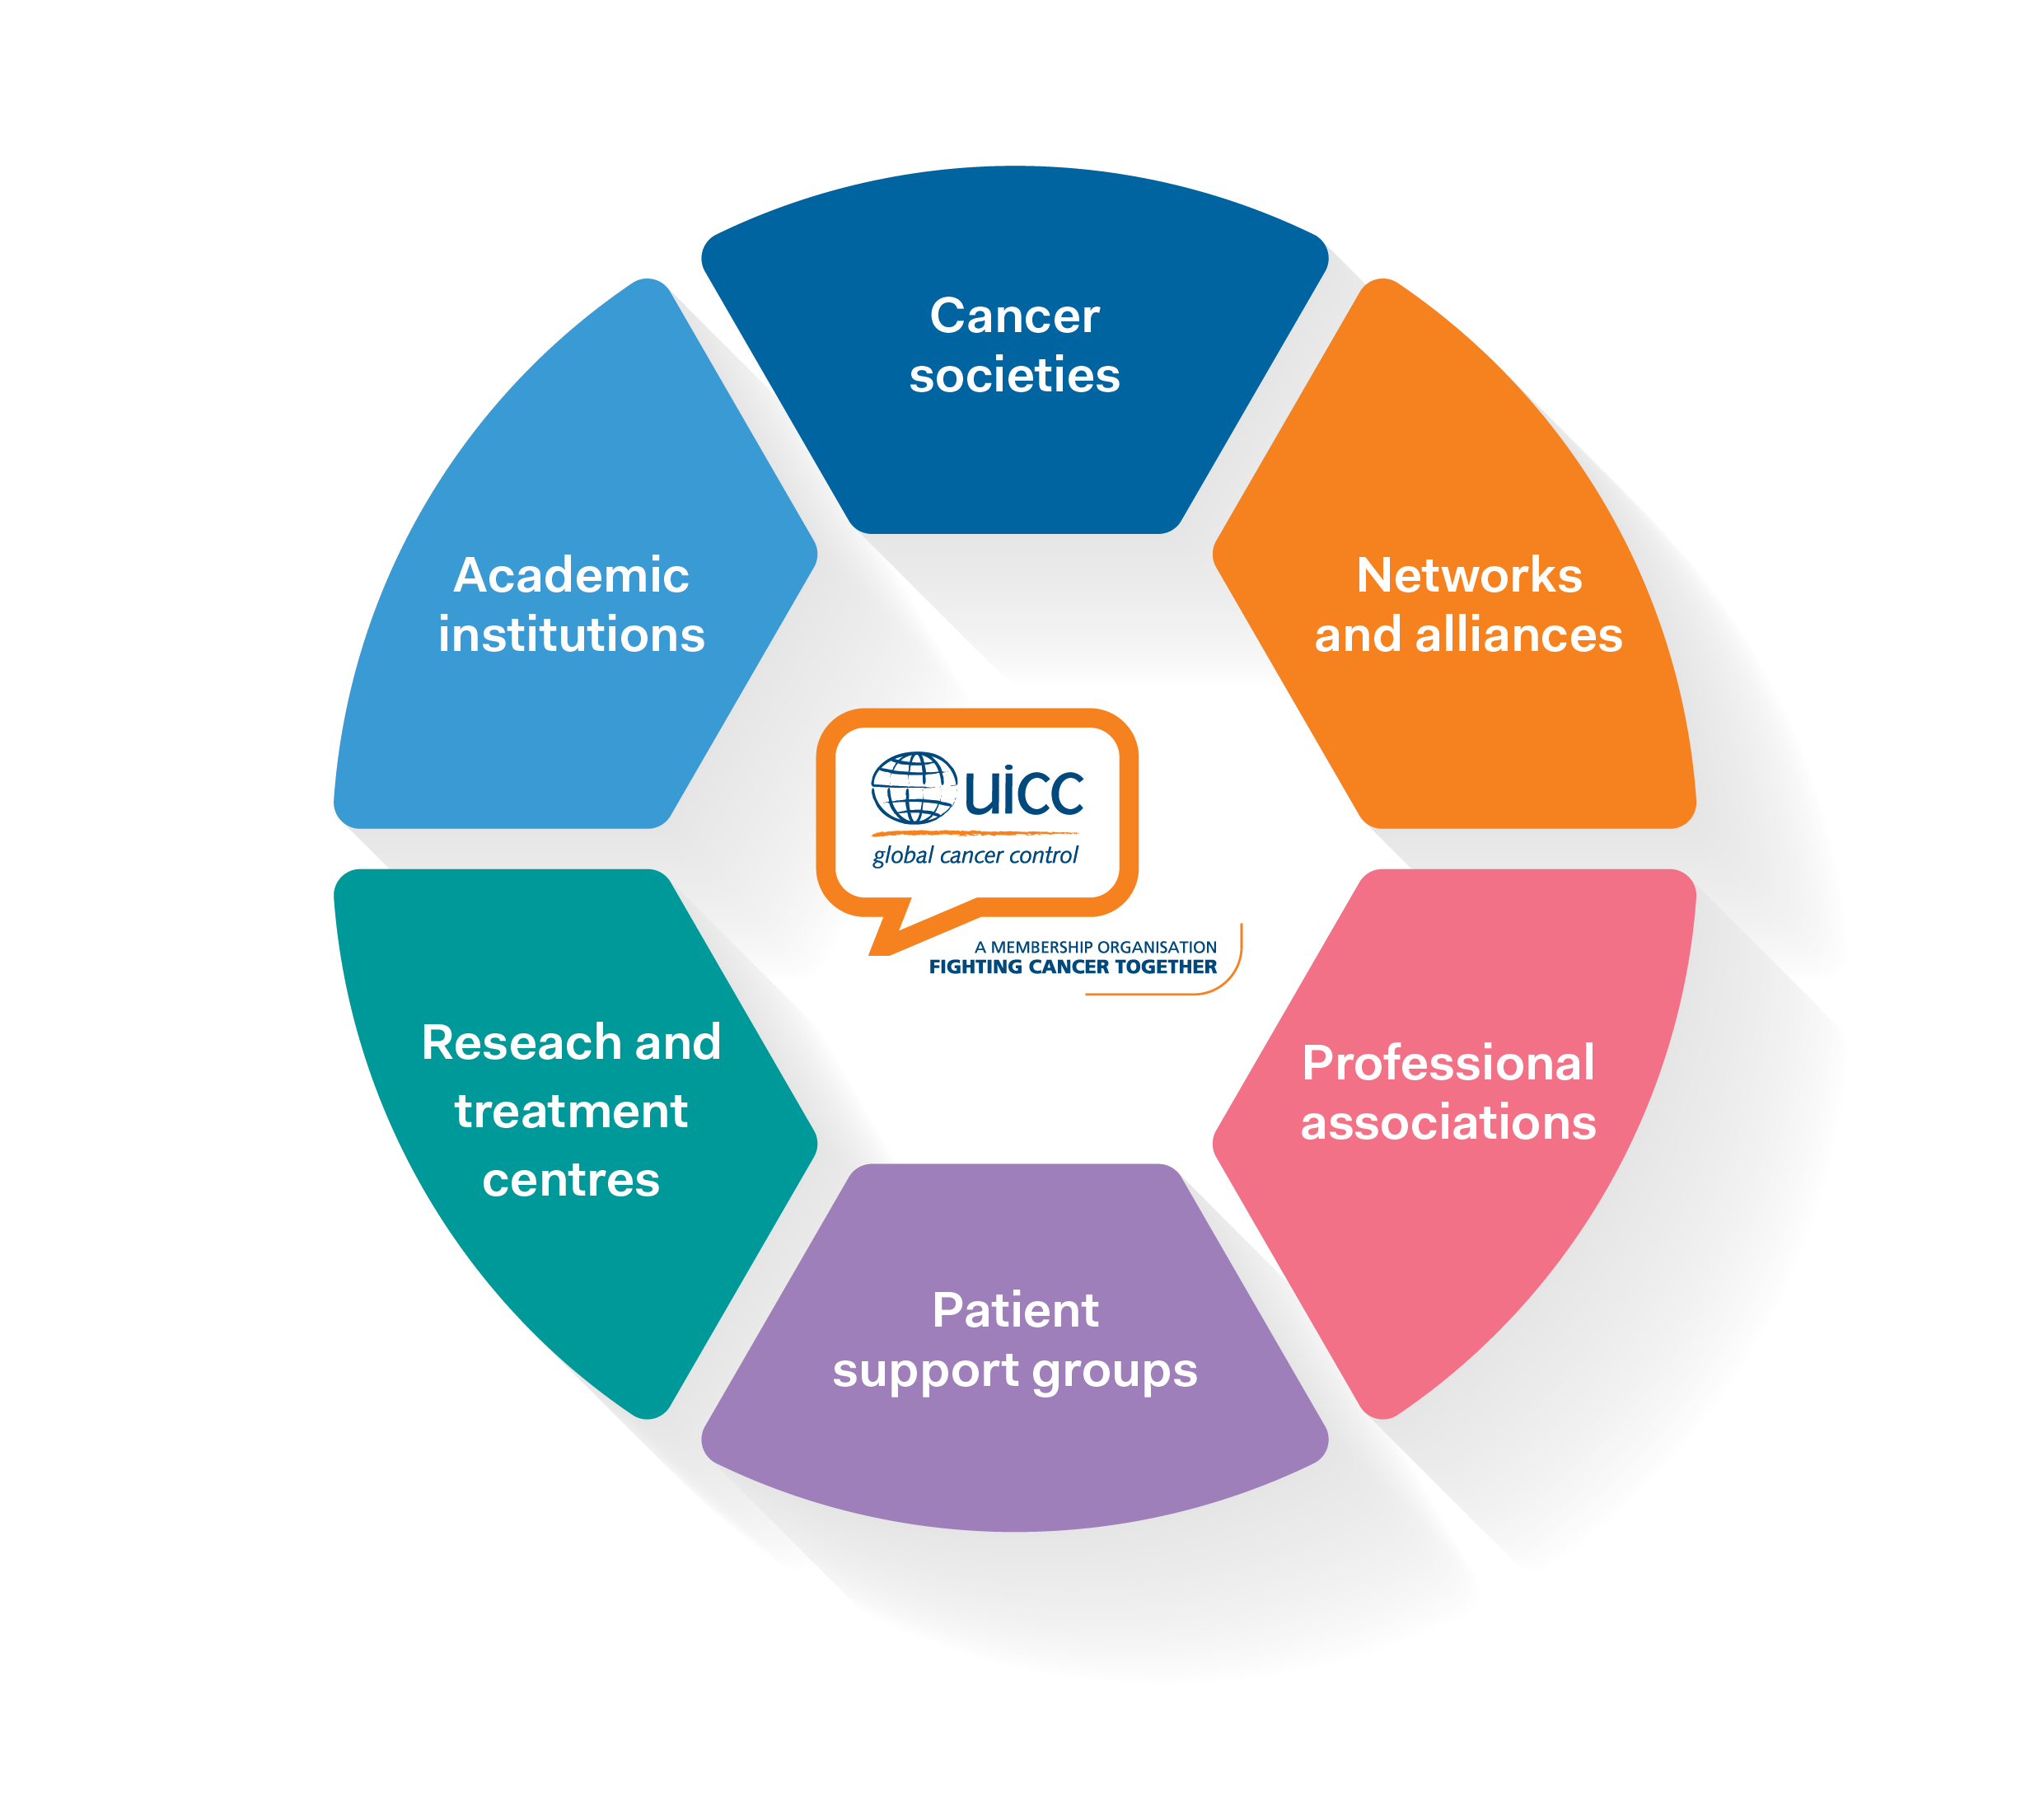 Cancer professional societies